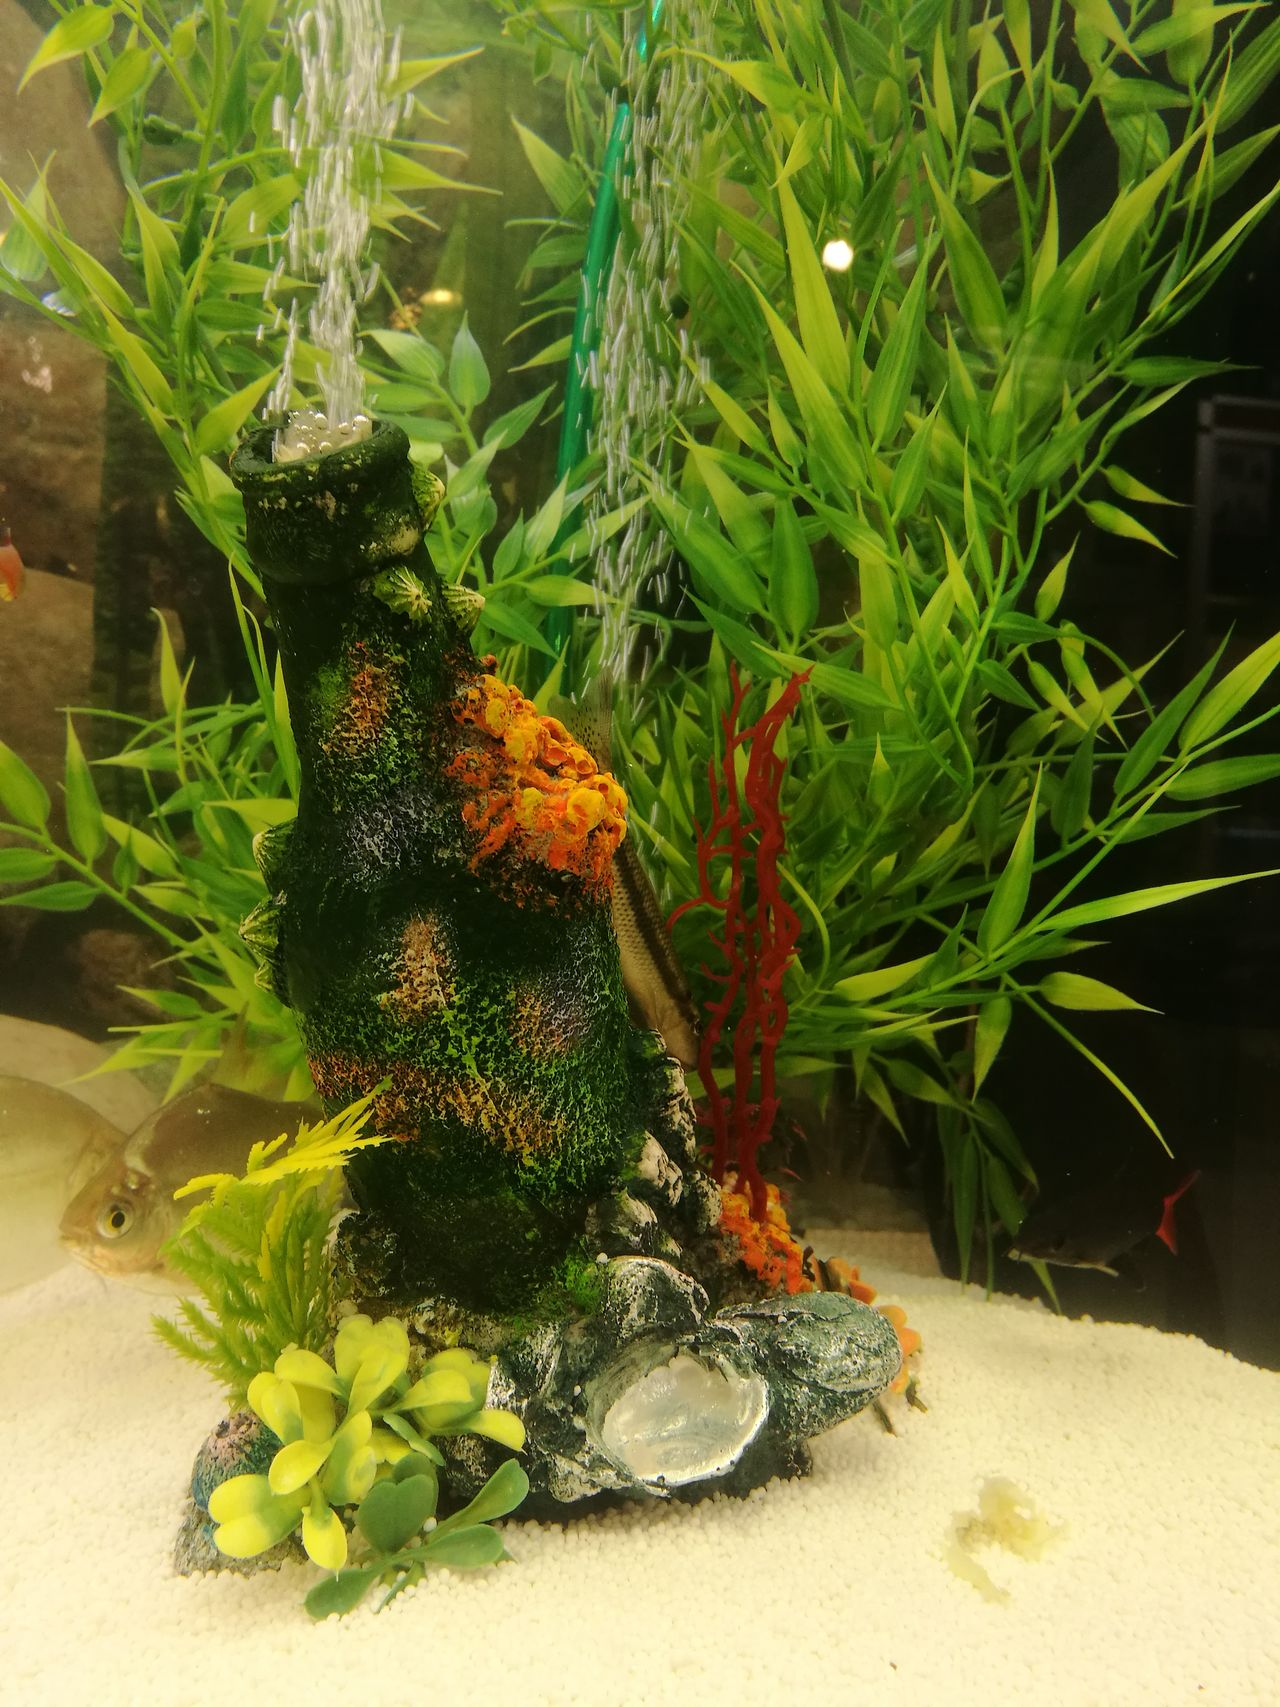 Growth Nature No People Plant Beauty In Nature Green Color Flower Freshness Fragility Close-up Leaf Indoors  Day Flower Head Fish Fishtank Fish Tank Decoration Tranquility